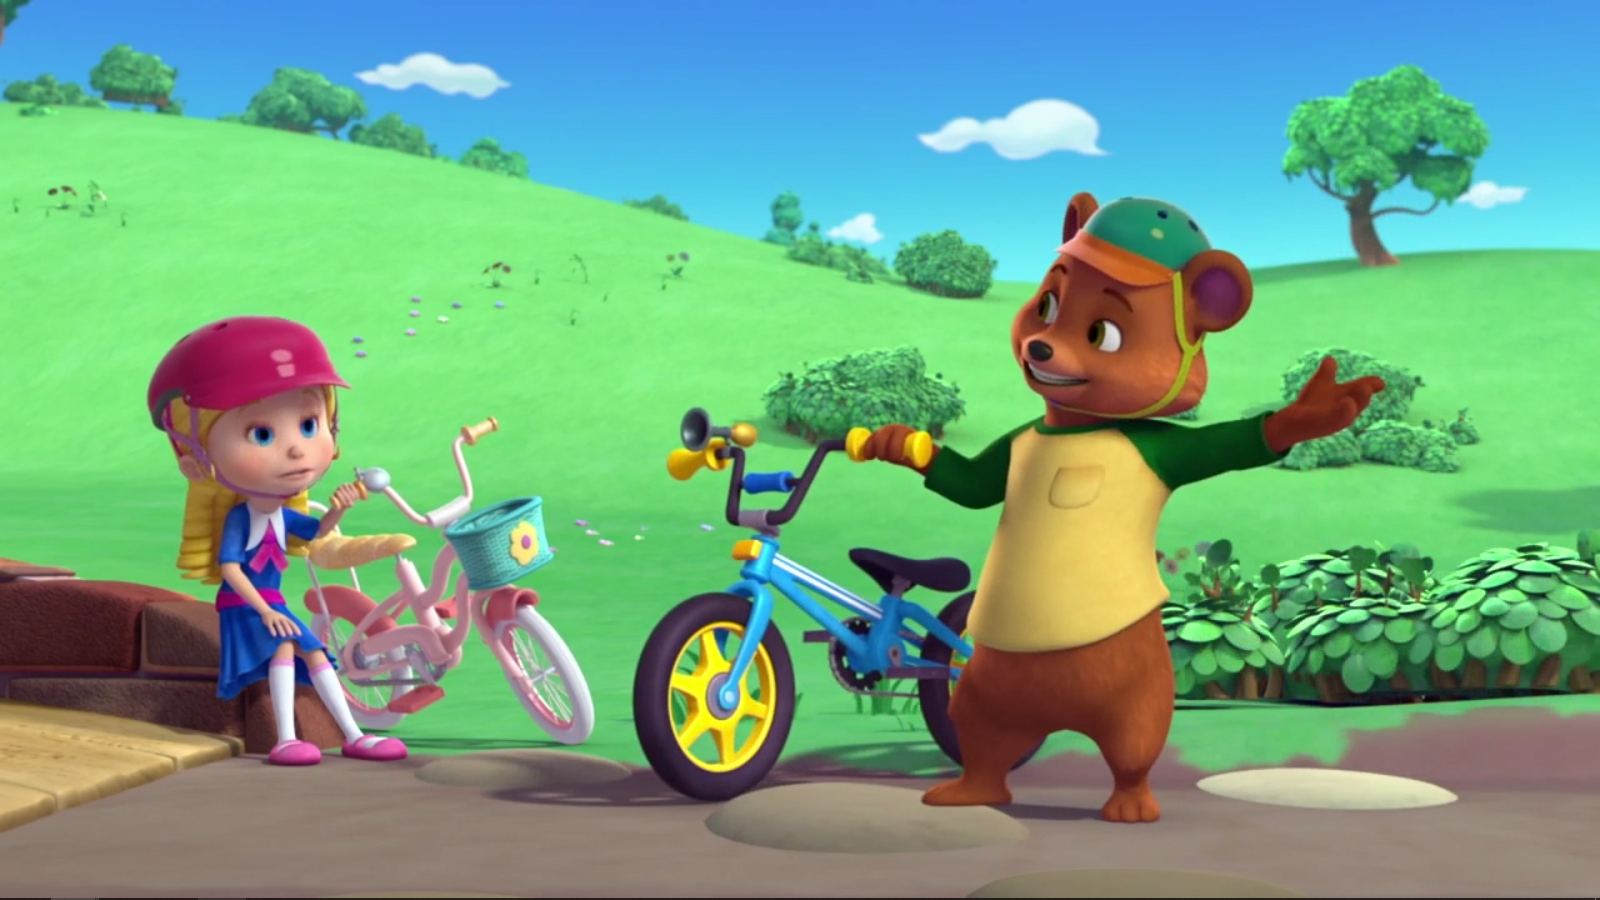 Bear's Guide to Riding a Bike